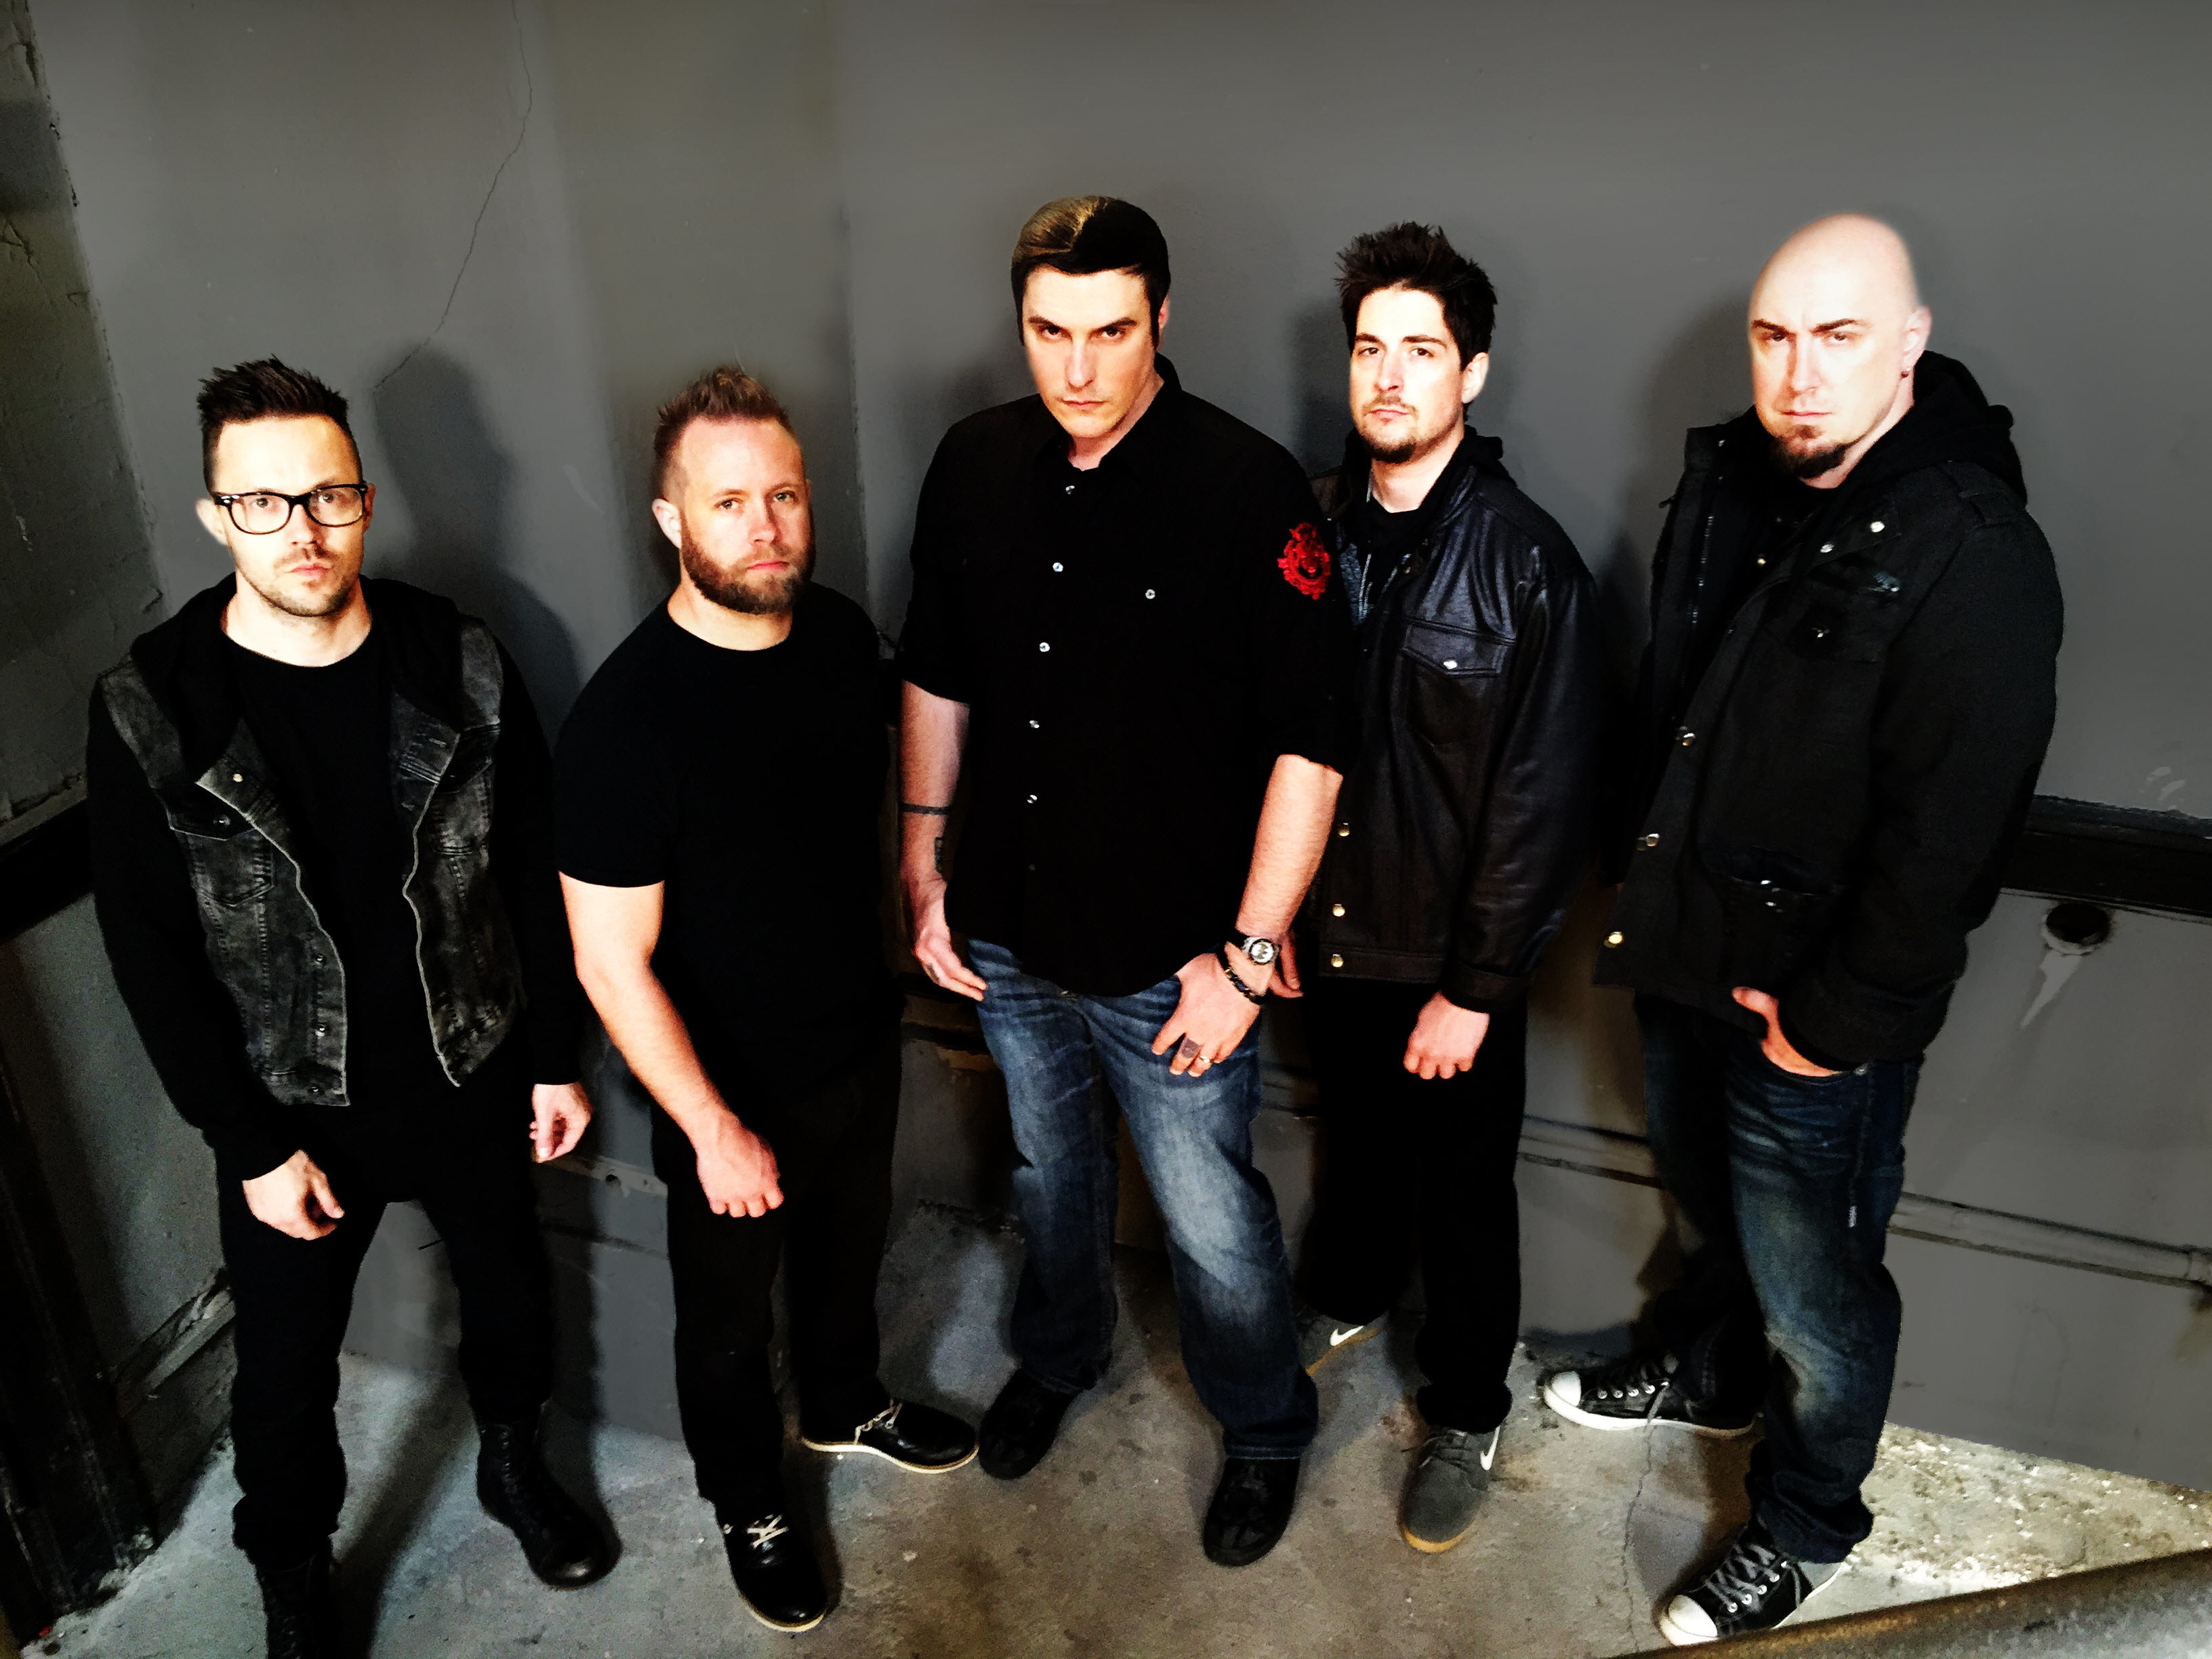 Charitybuzz meet breaking benjamin with 2 vip tickets to a show on original m4hsunfo